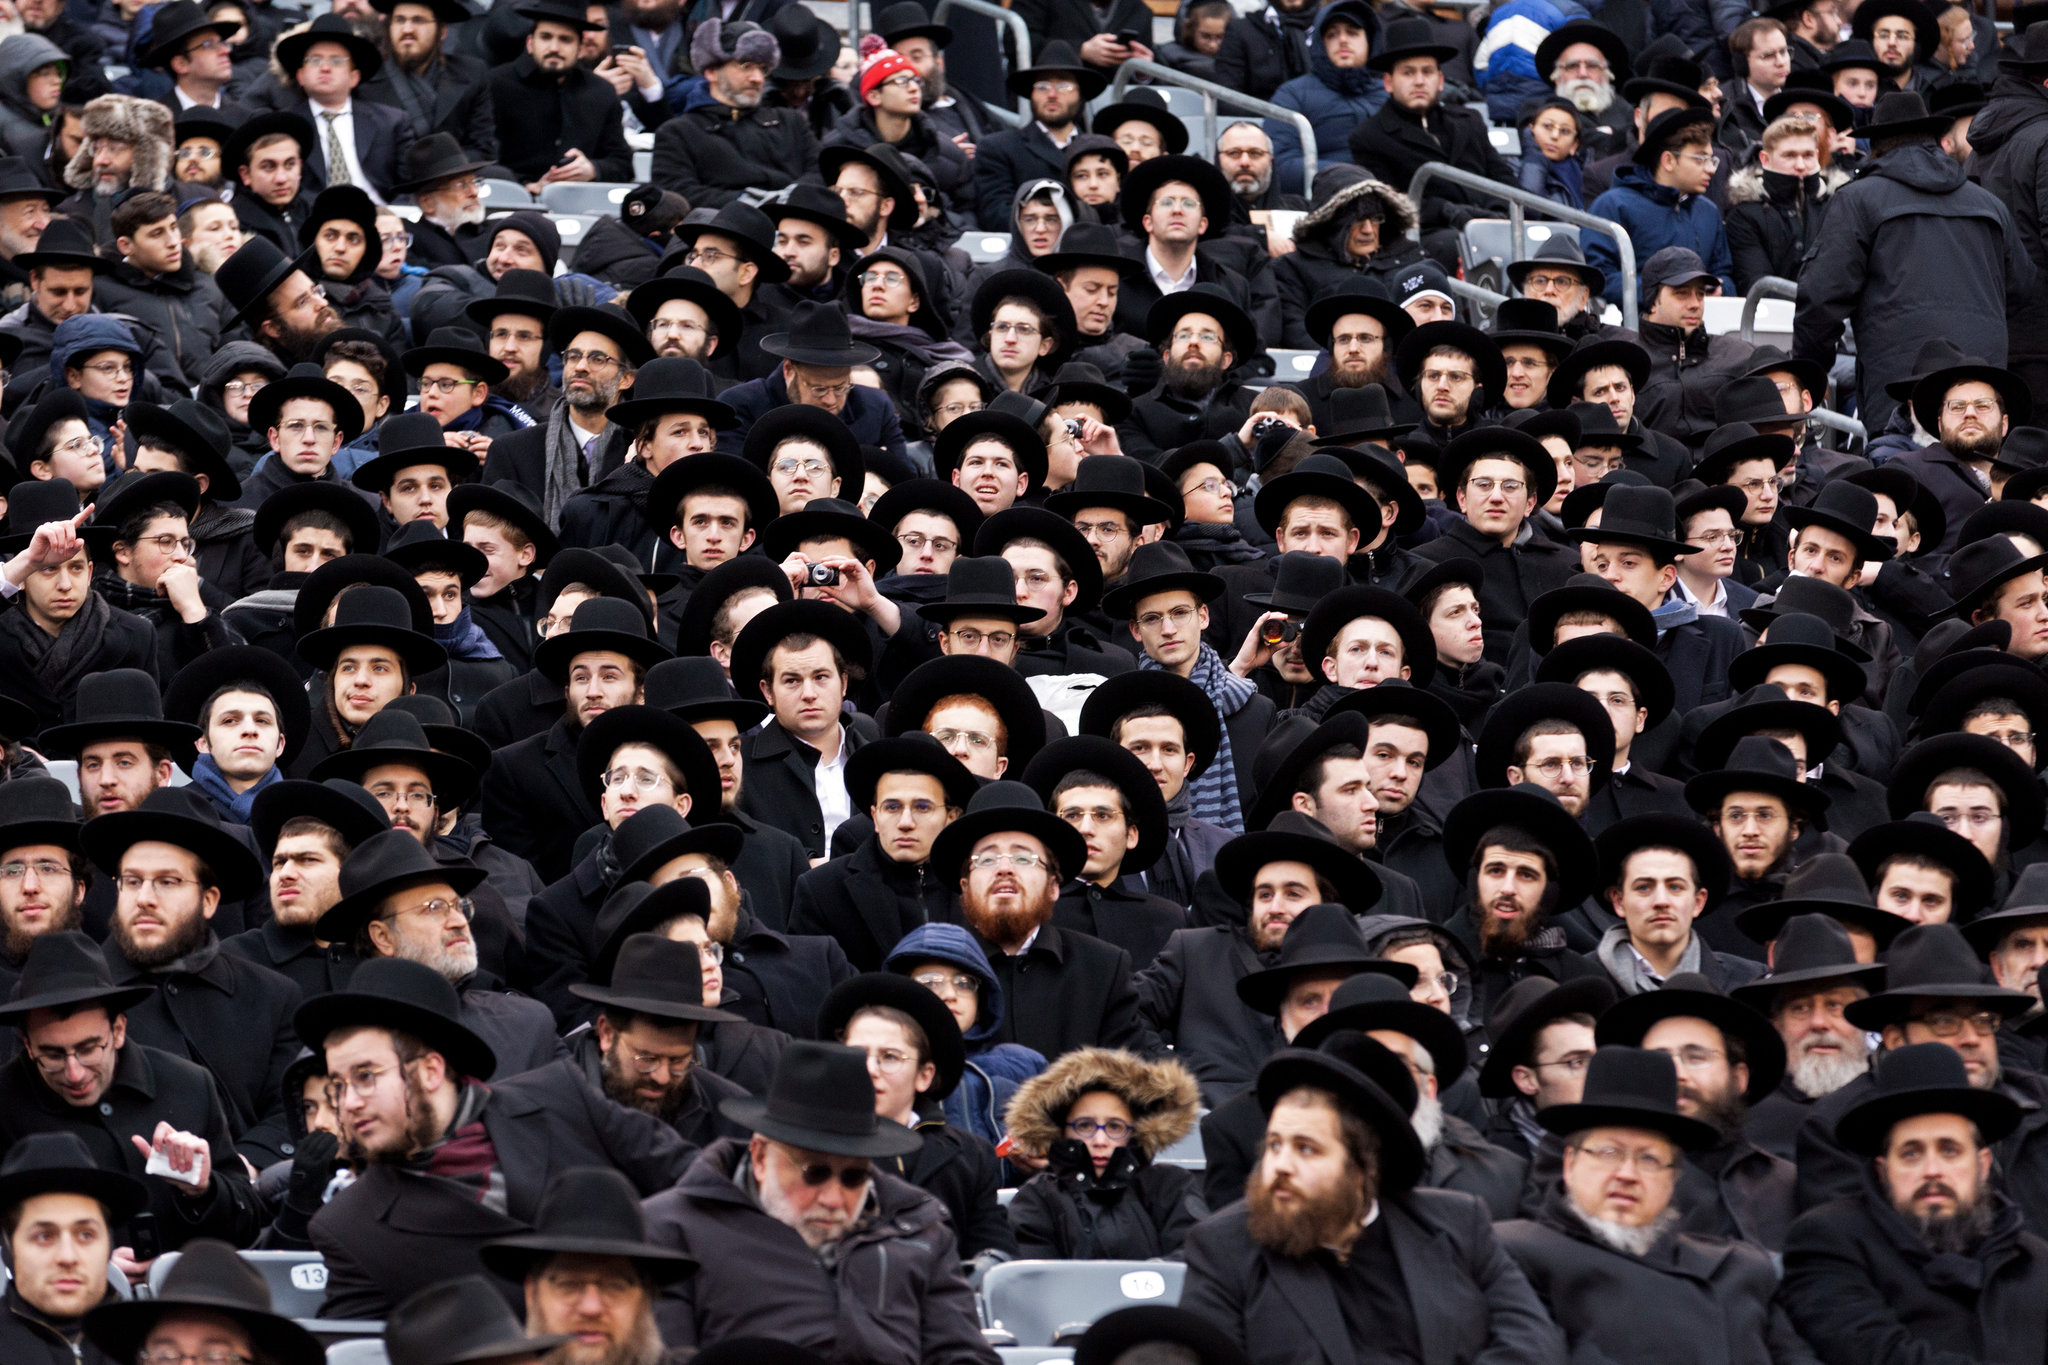 90,000 Jews Gather To Pray And Defy A Wave Of Hate – The New Within What Year Is It According To Jews